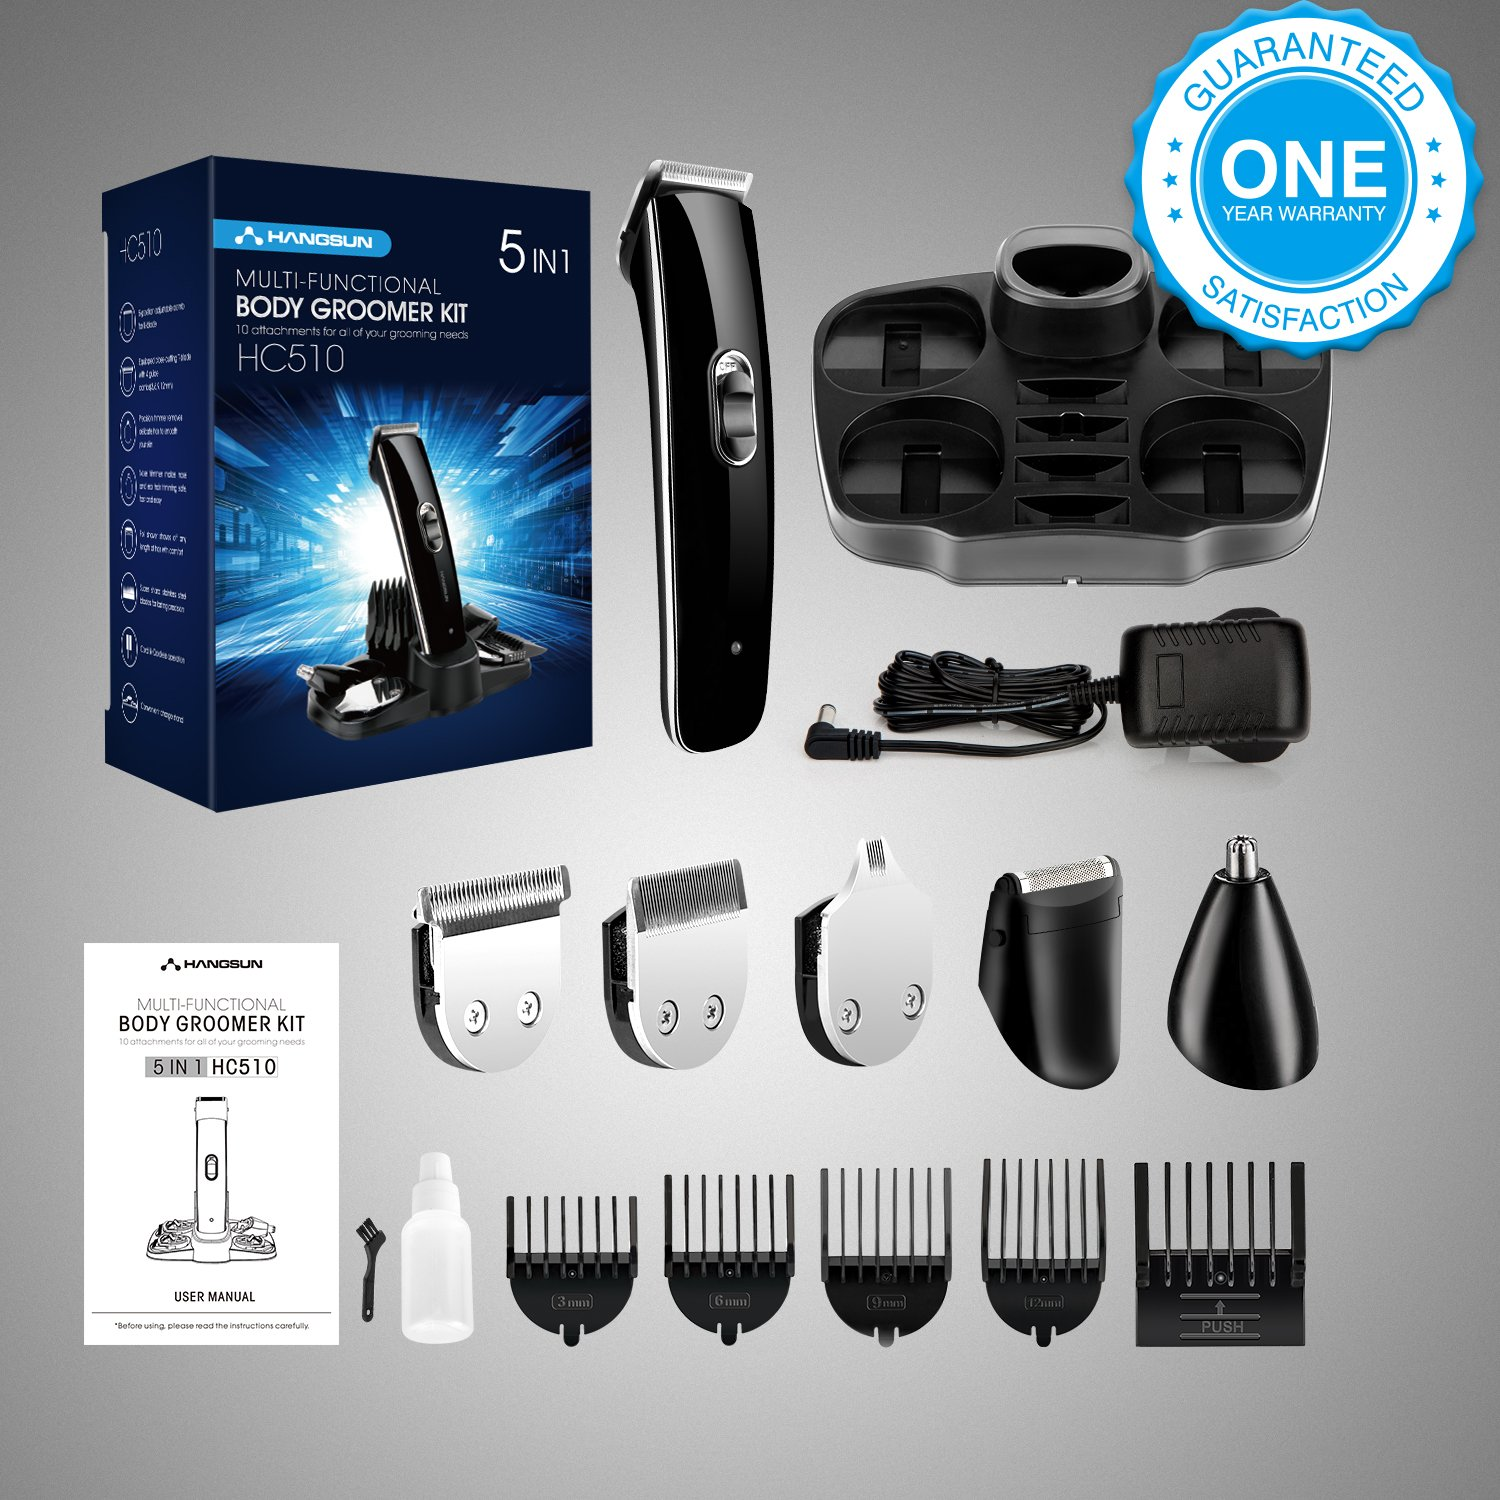 Beard Trimmer for Men, Rechargeable All-in-One Multi-Functional Grooming Kit